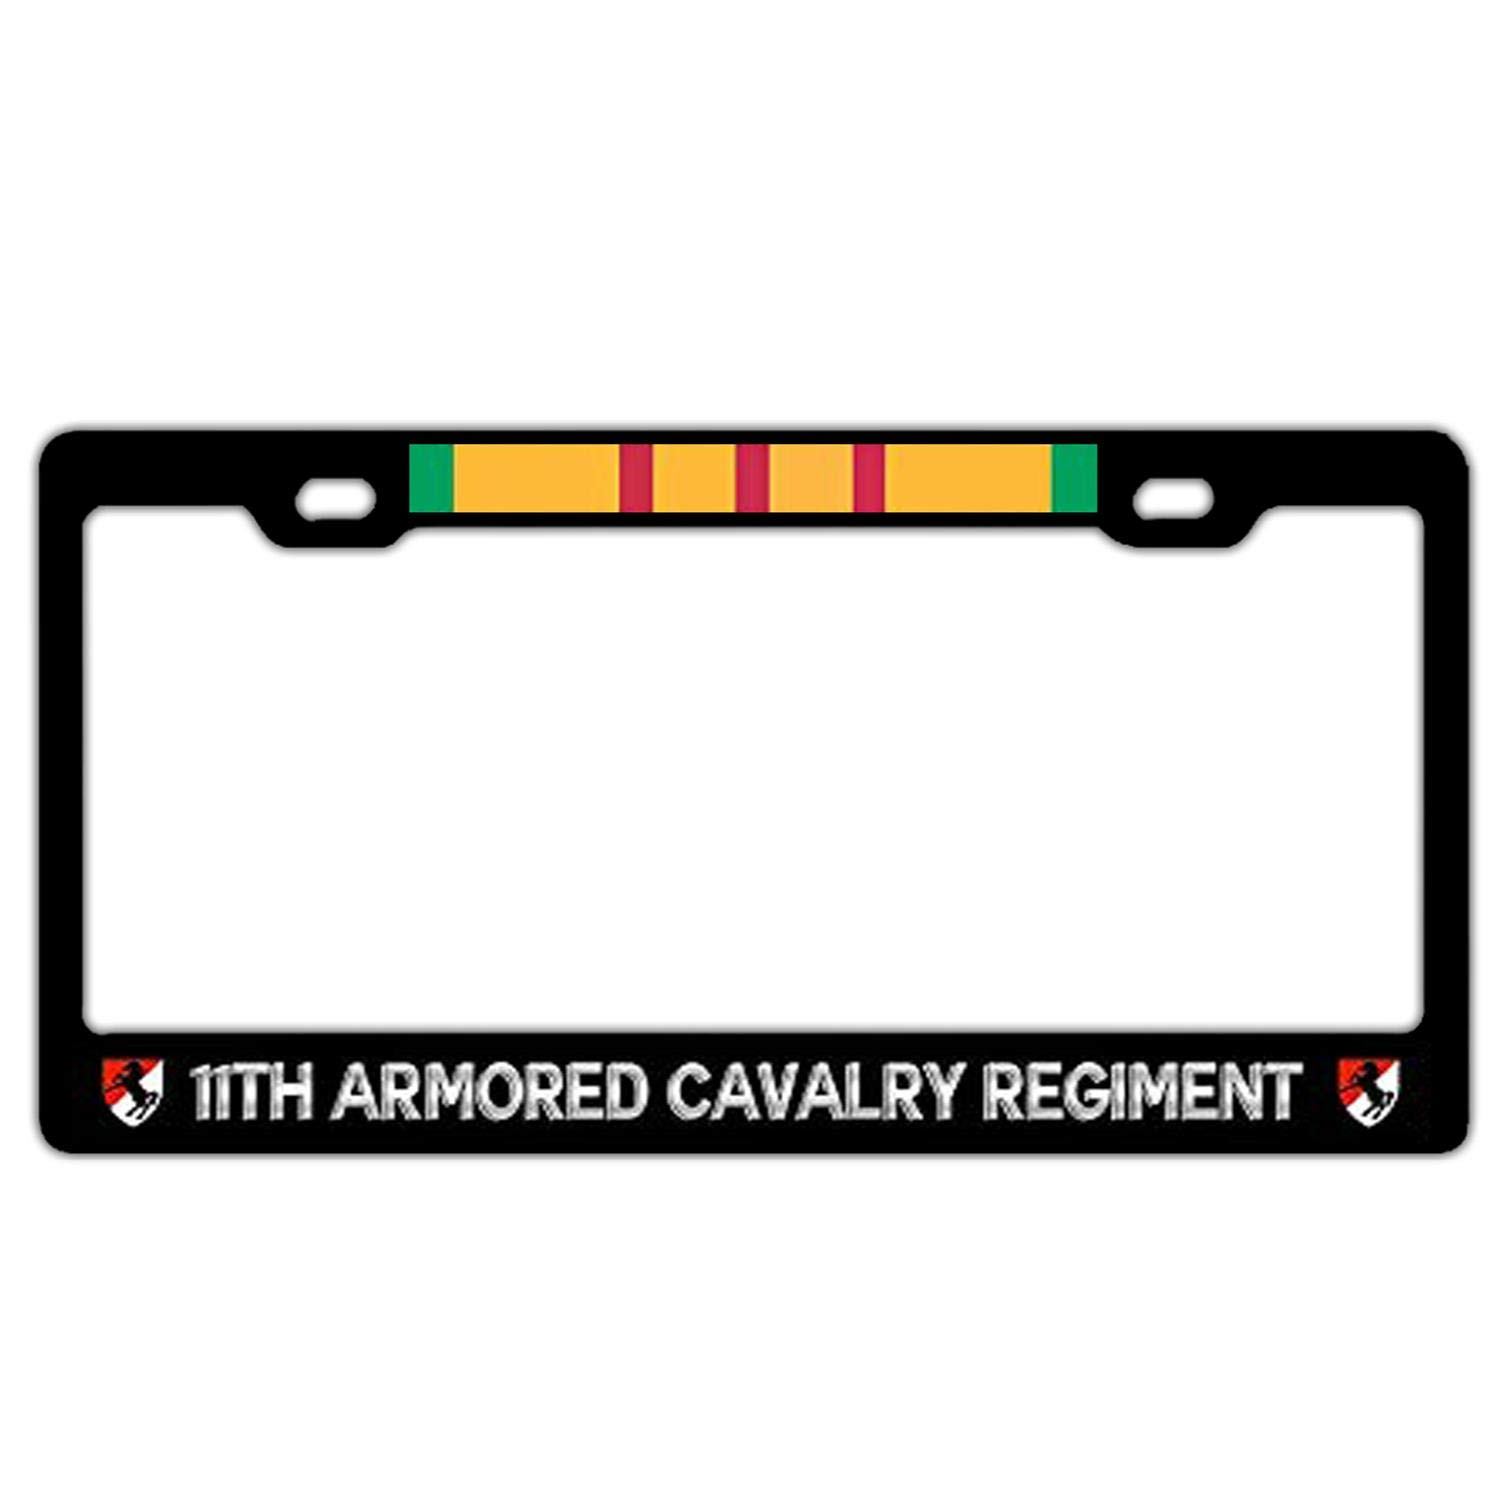 Black License Plate Covers Cute Car Tag Frame with Screws Universal License Plate Frame for Women//Men